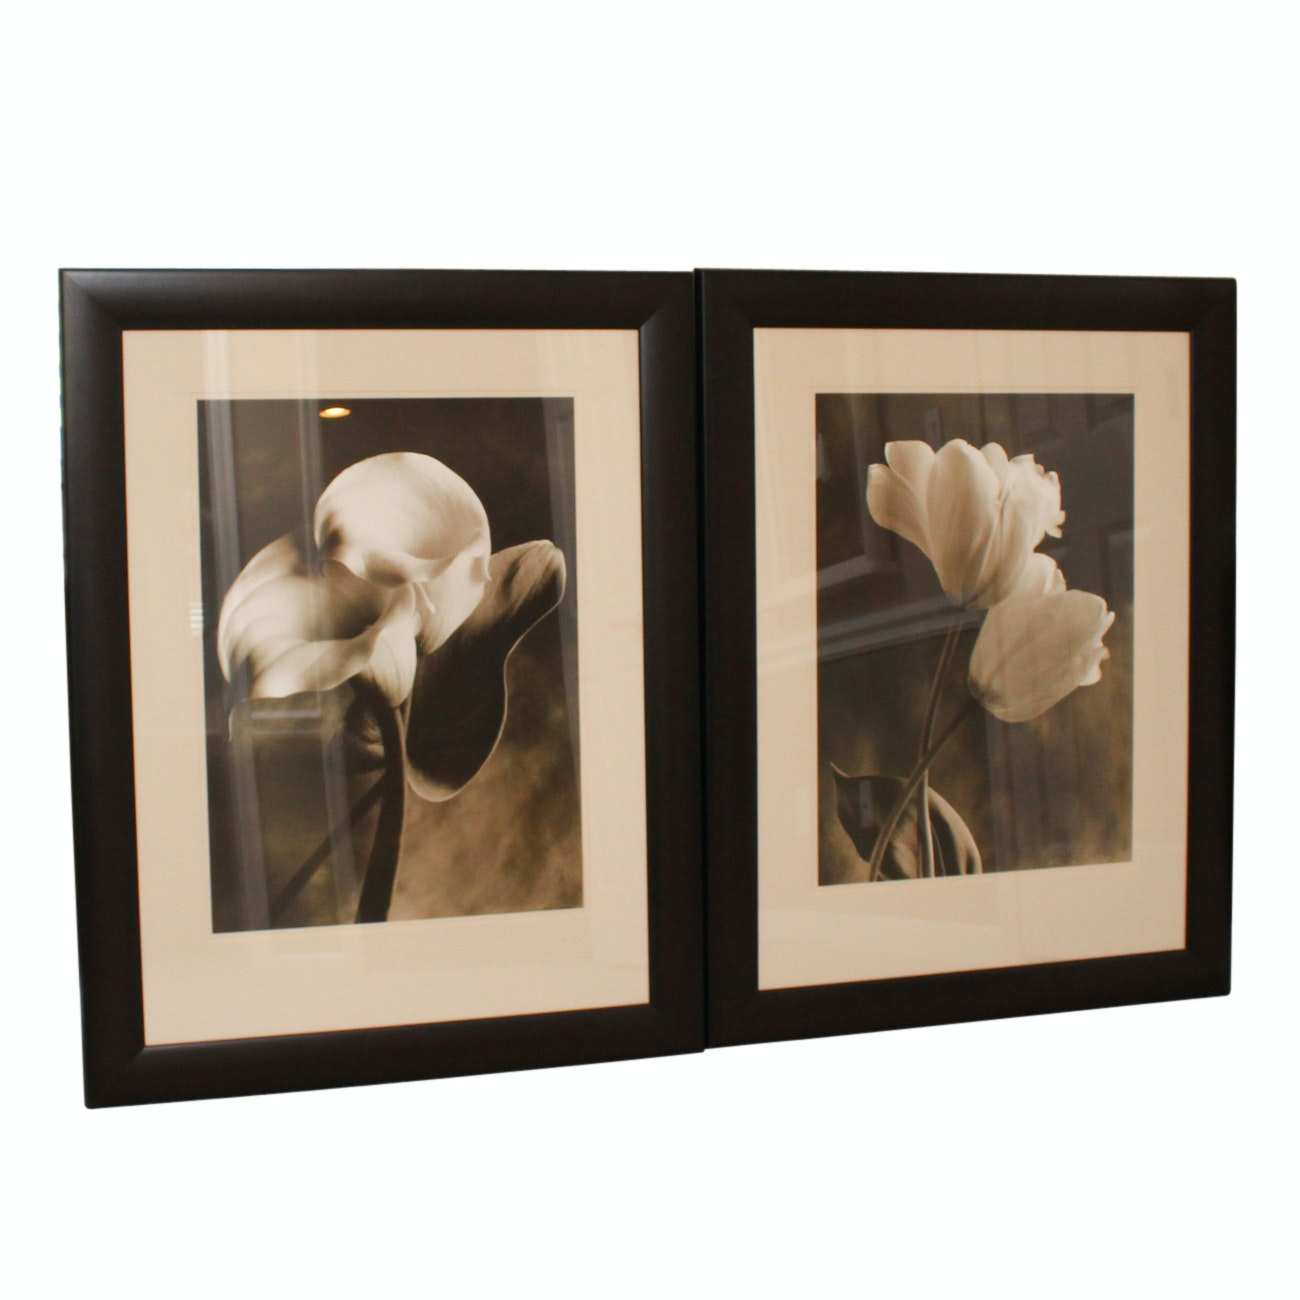 Pair of Black and White Floral Photographs